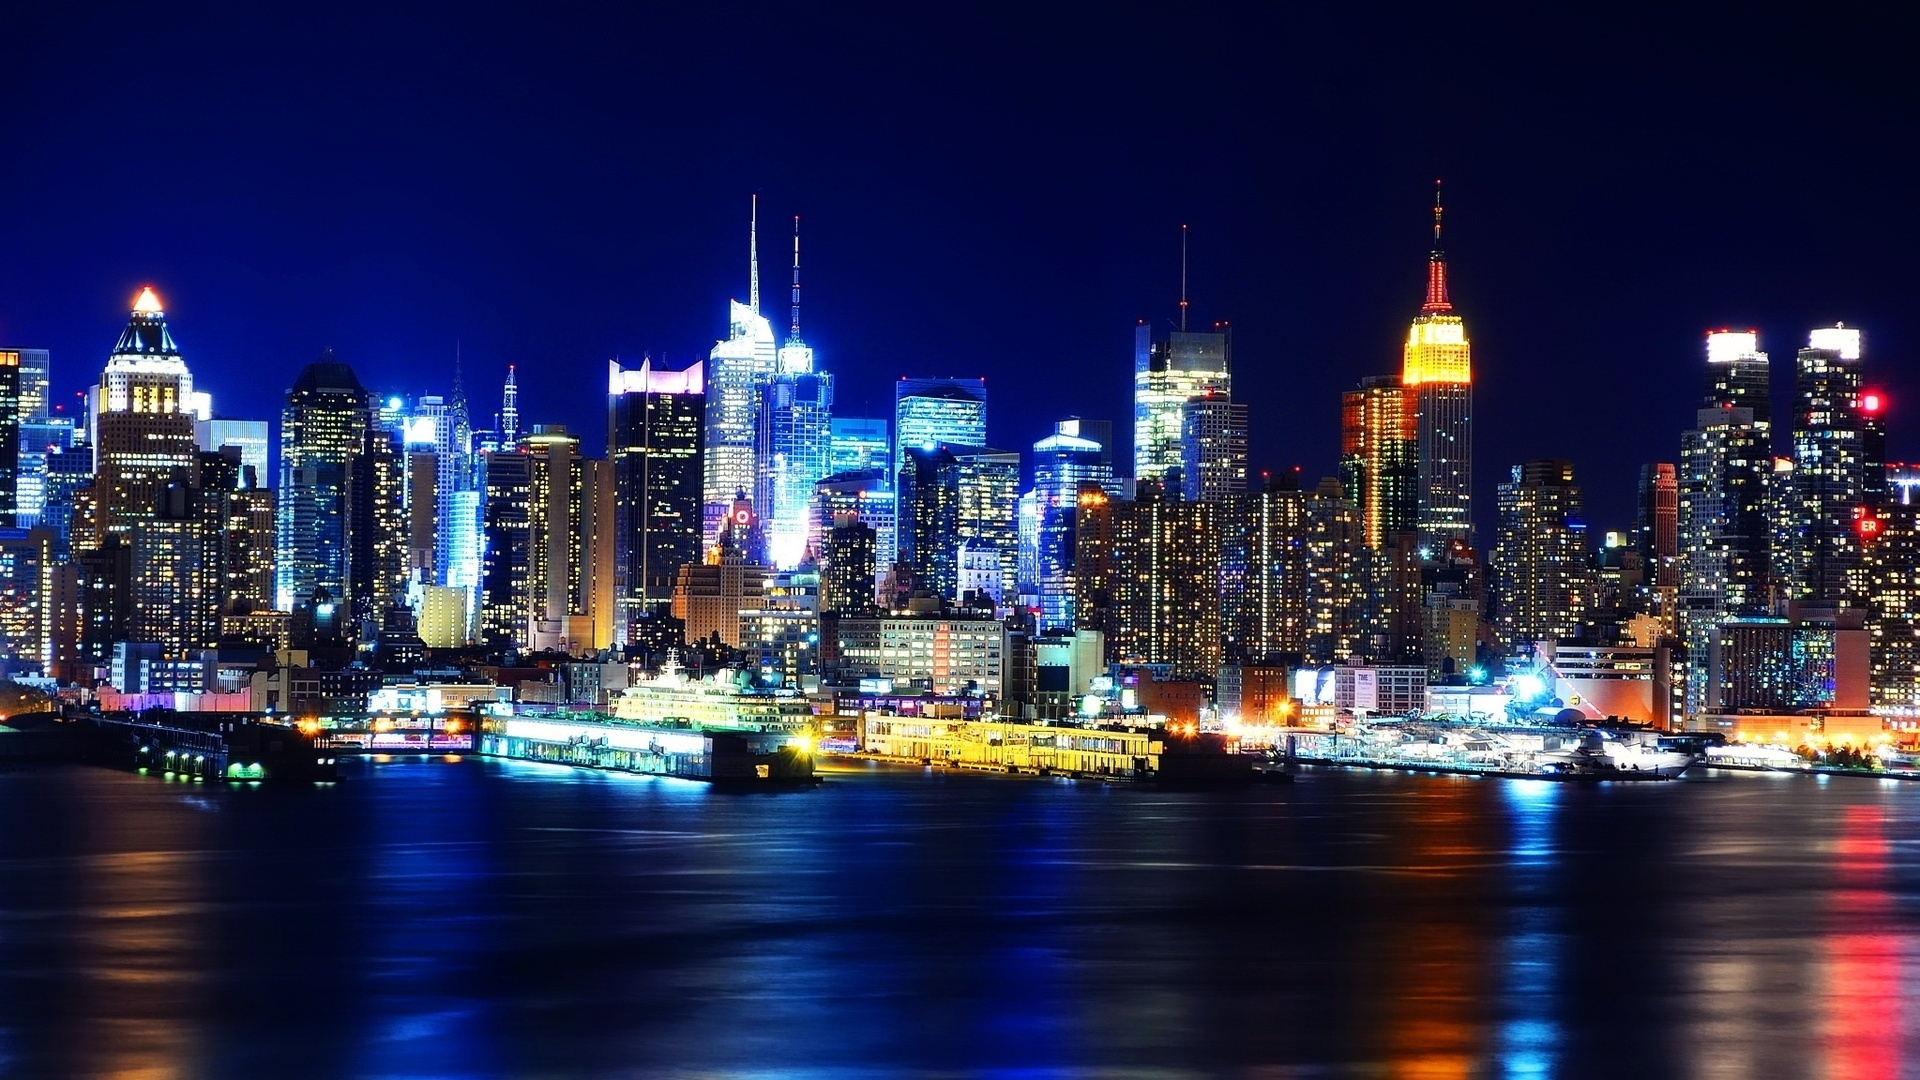 Nyc Night Skyline Wallpaper